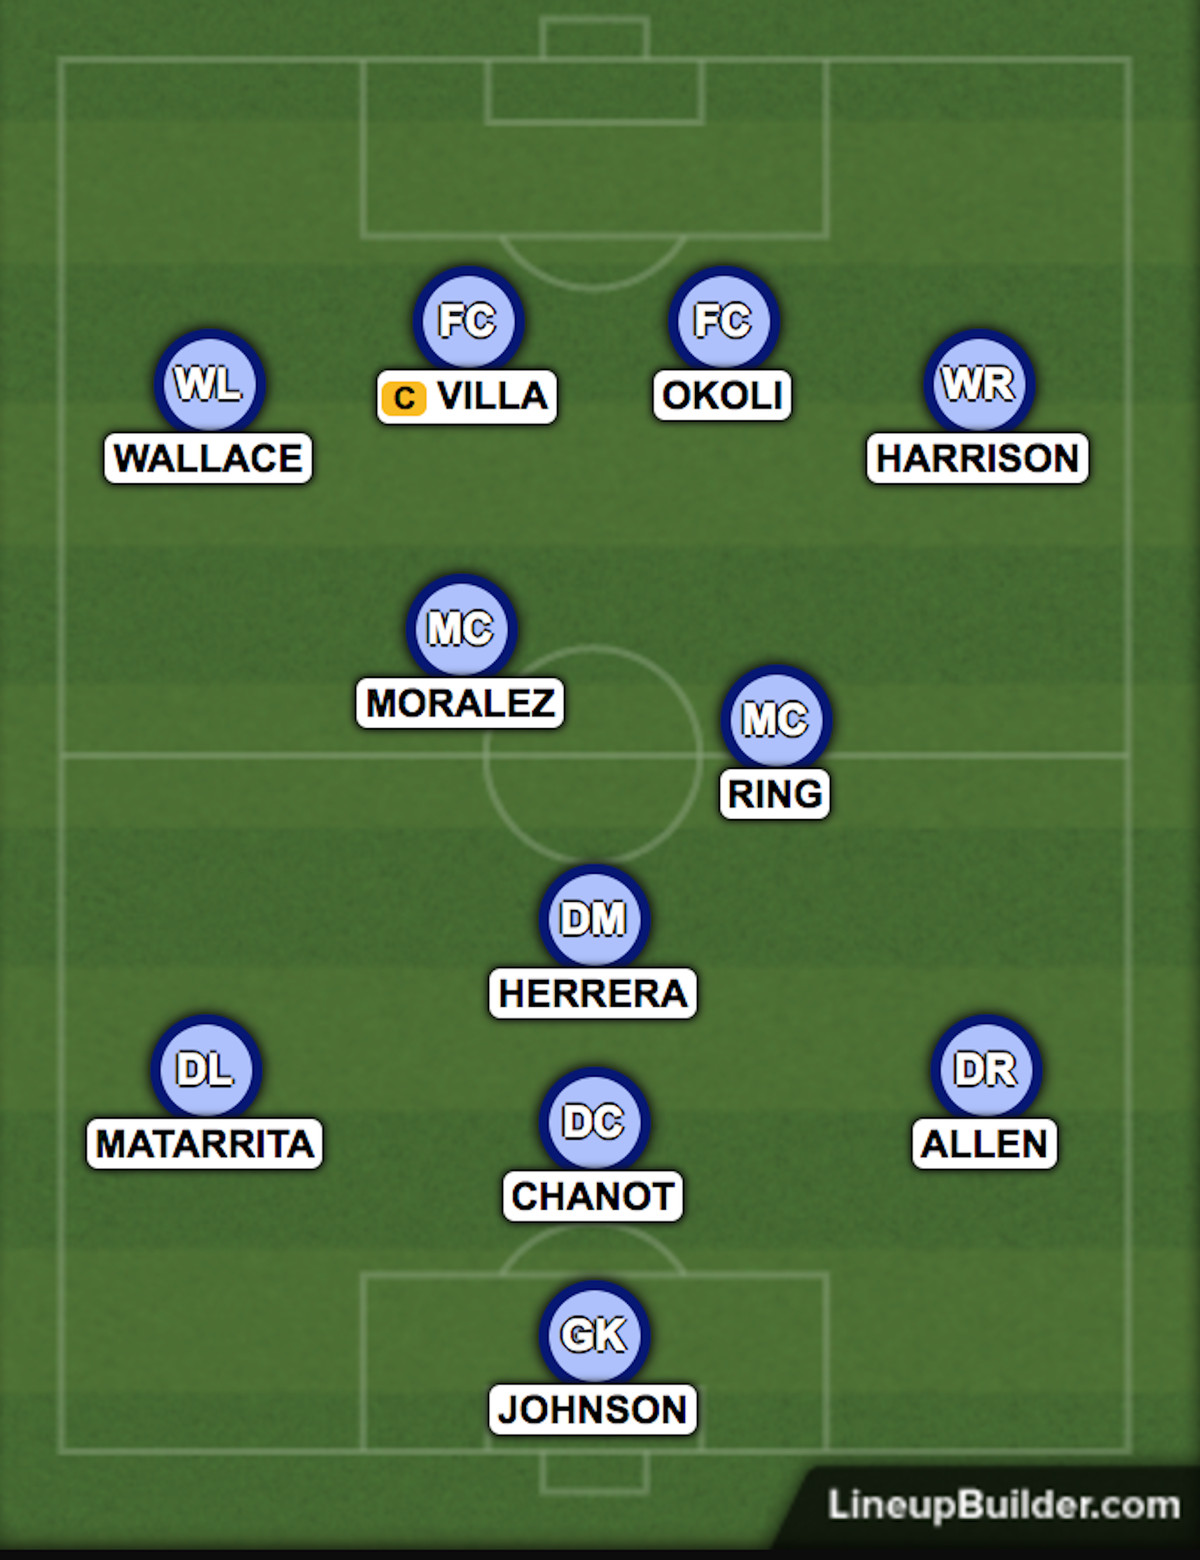 Potential lineup for Hudson River Derby